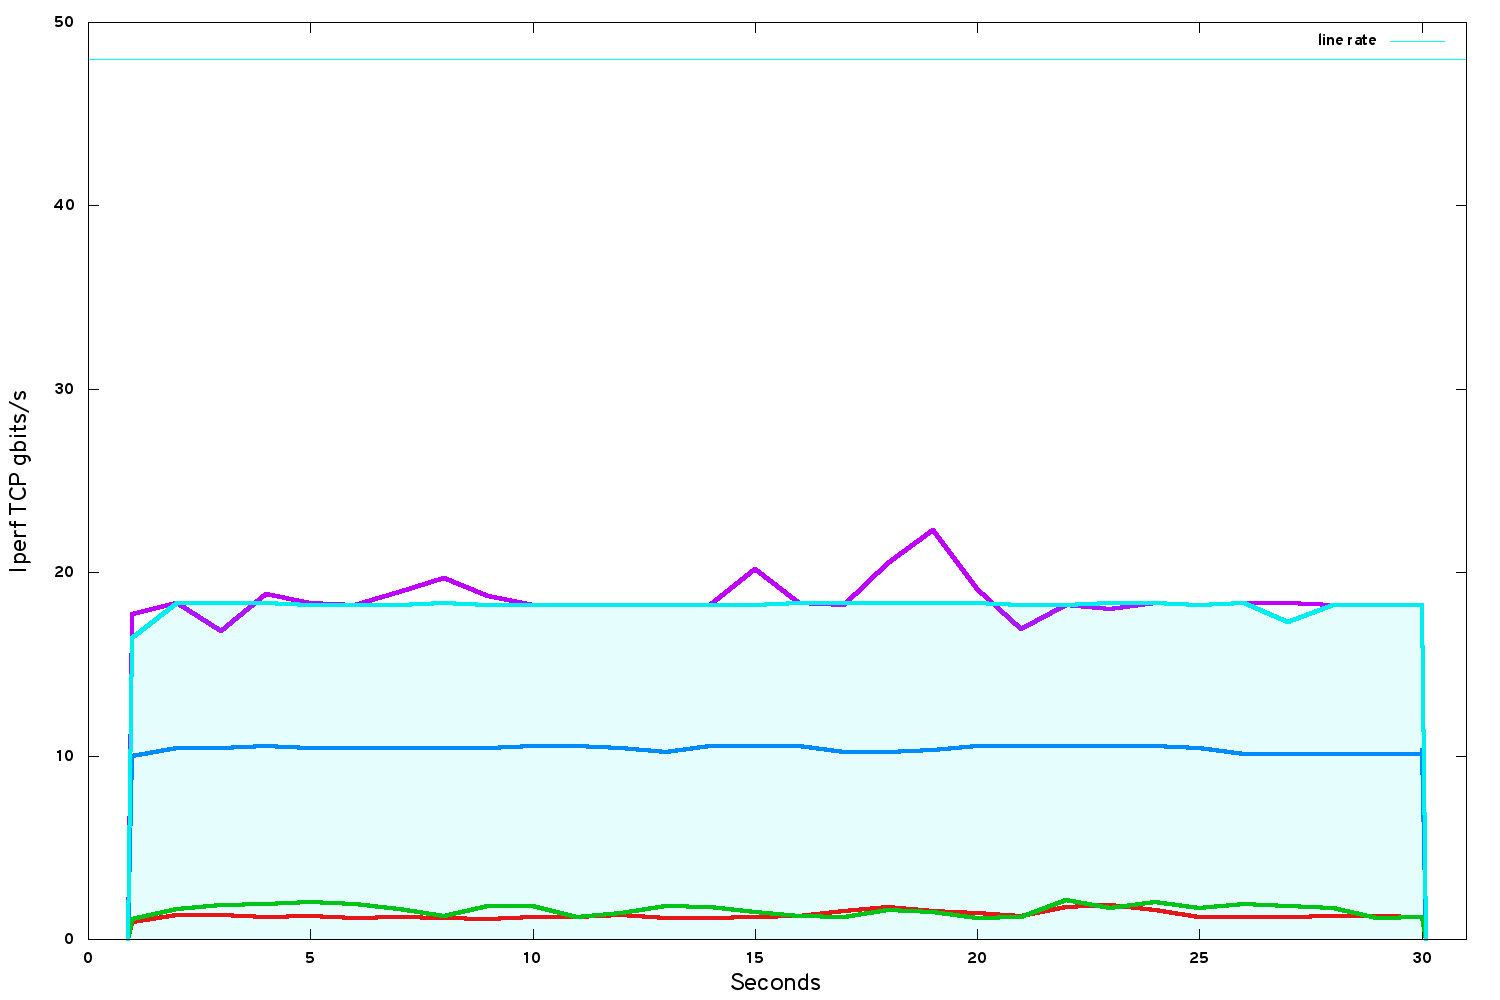 iperf bandwidth after VCPU pinning